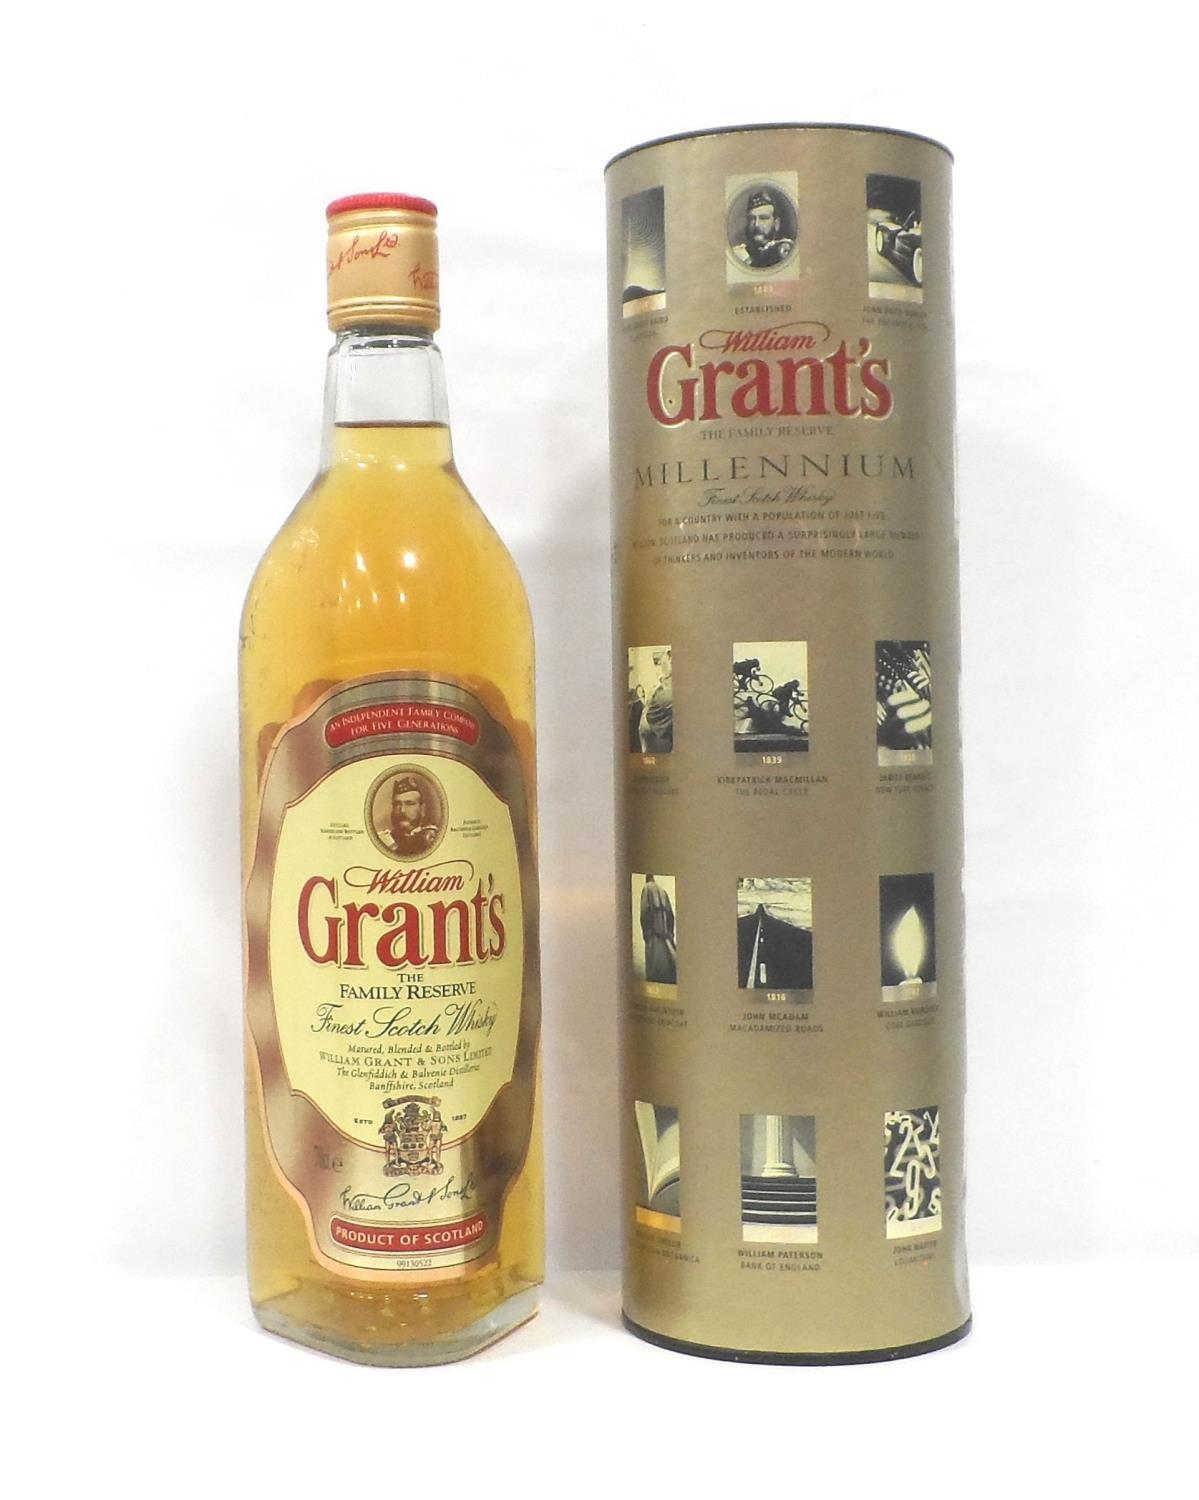 Lot 33 - GRANT'S MILLENNIUM A bottle of William Grant's The Family Reserve Millennium Blended Scotch